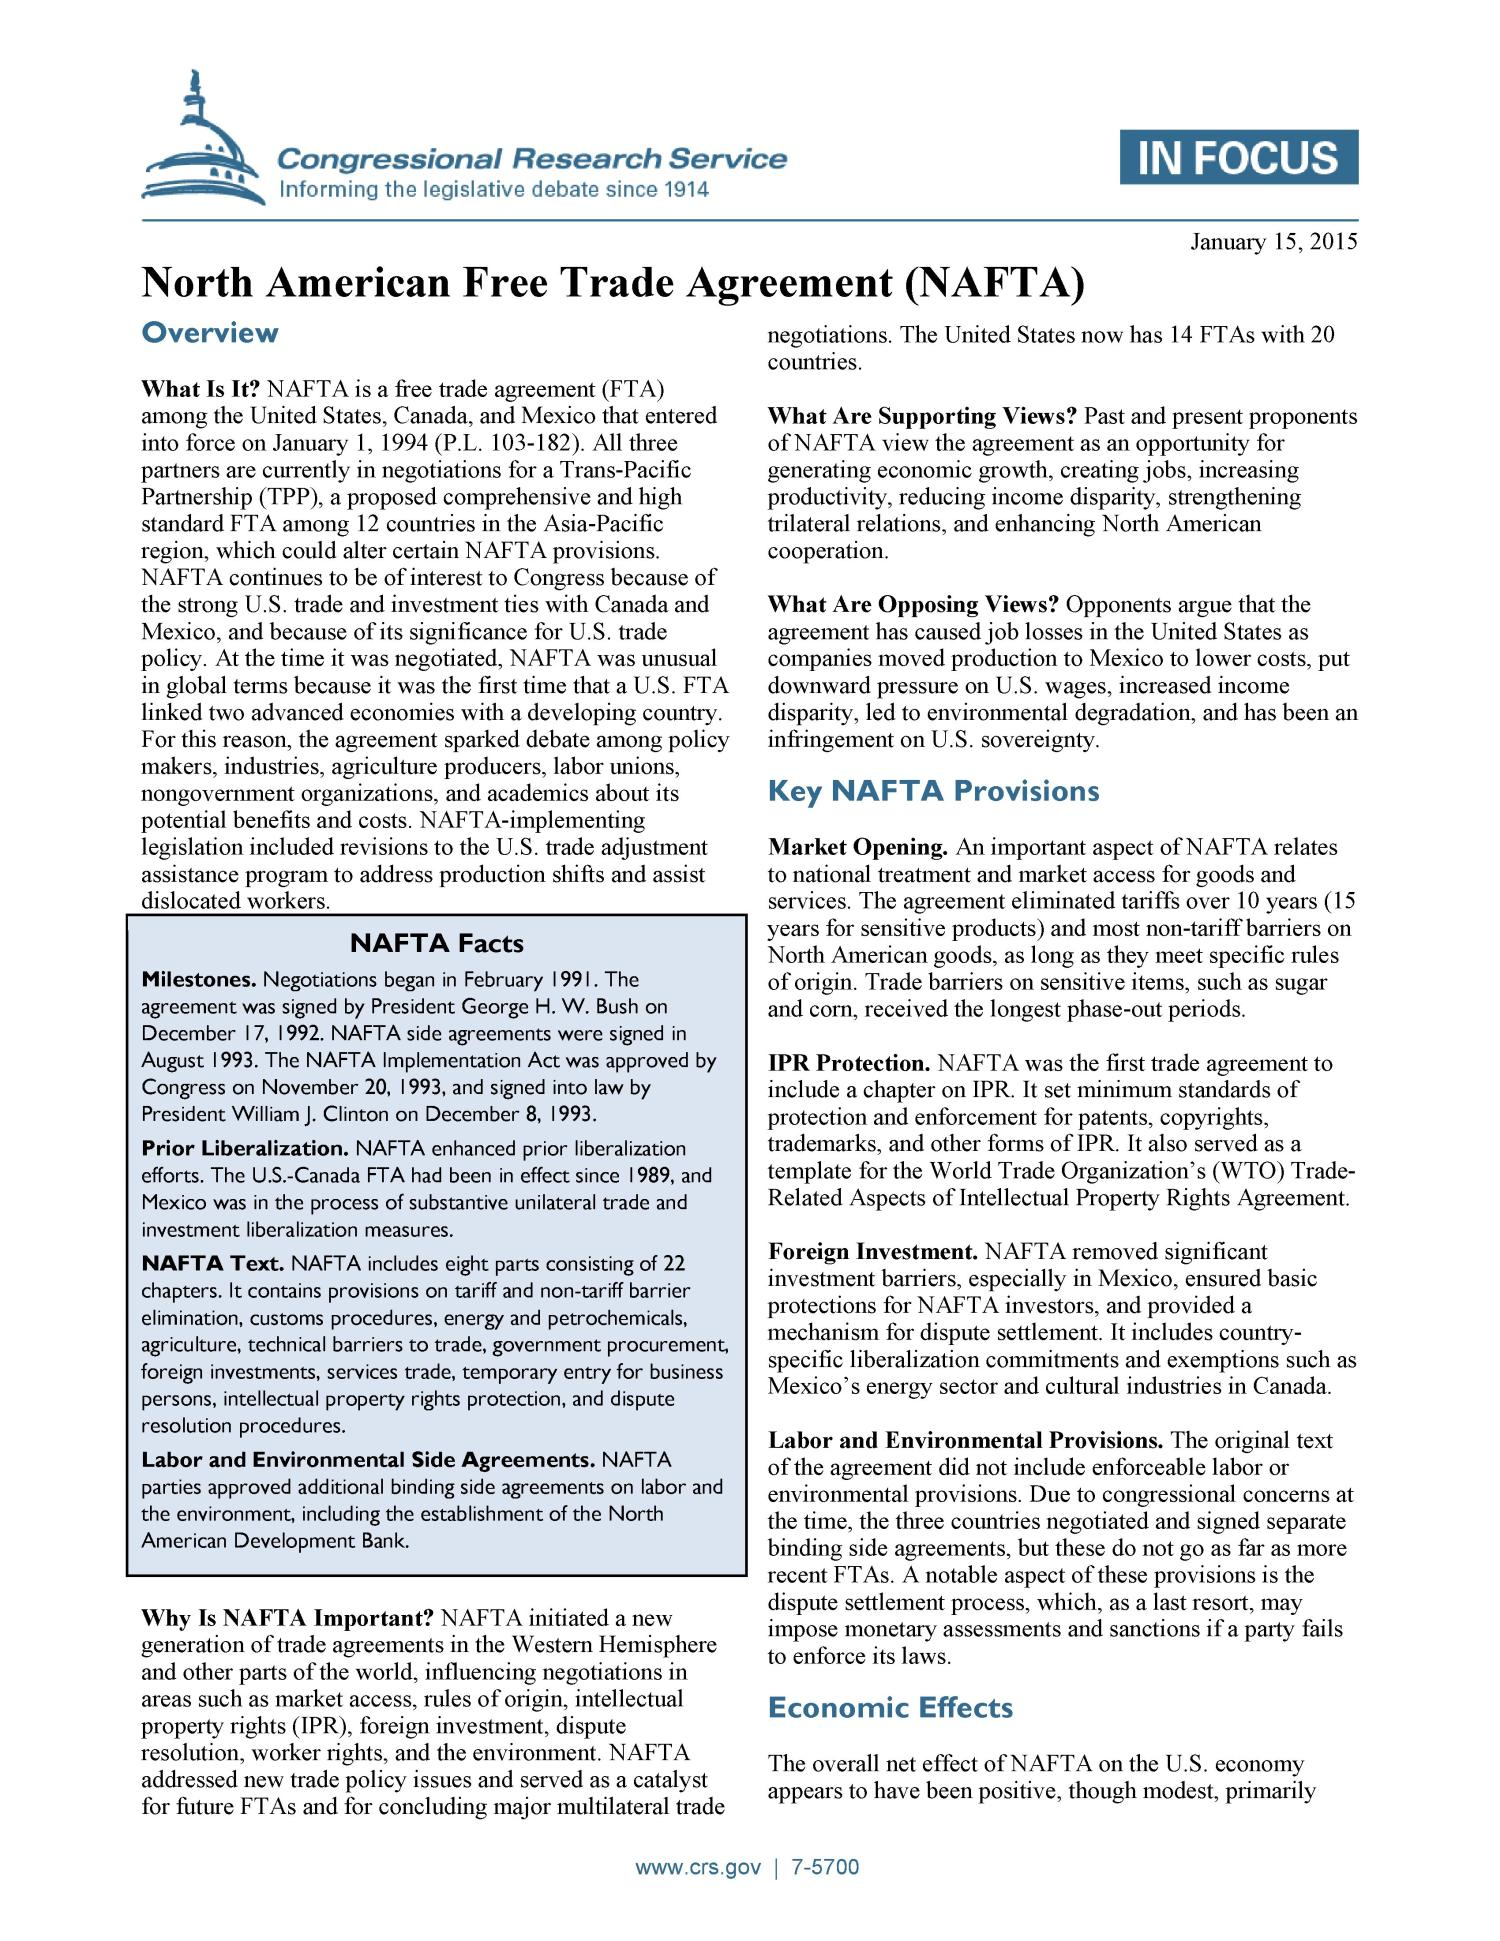 a look at the proponents and opponents of north american free trade agreement Get help on 【 north american free trade agreement essay nafta reduced barriers to trade and investment between mexico, the united states, and canada the question of jobs is important because during the free trade debate the conservative government and proponents claimed that.